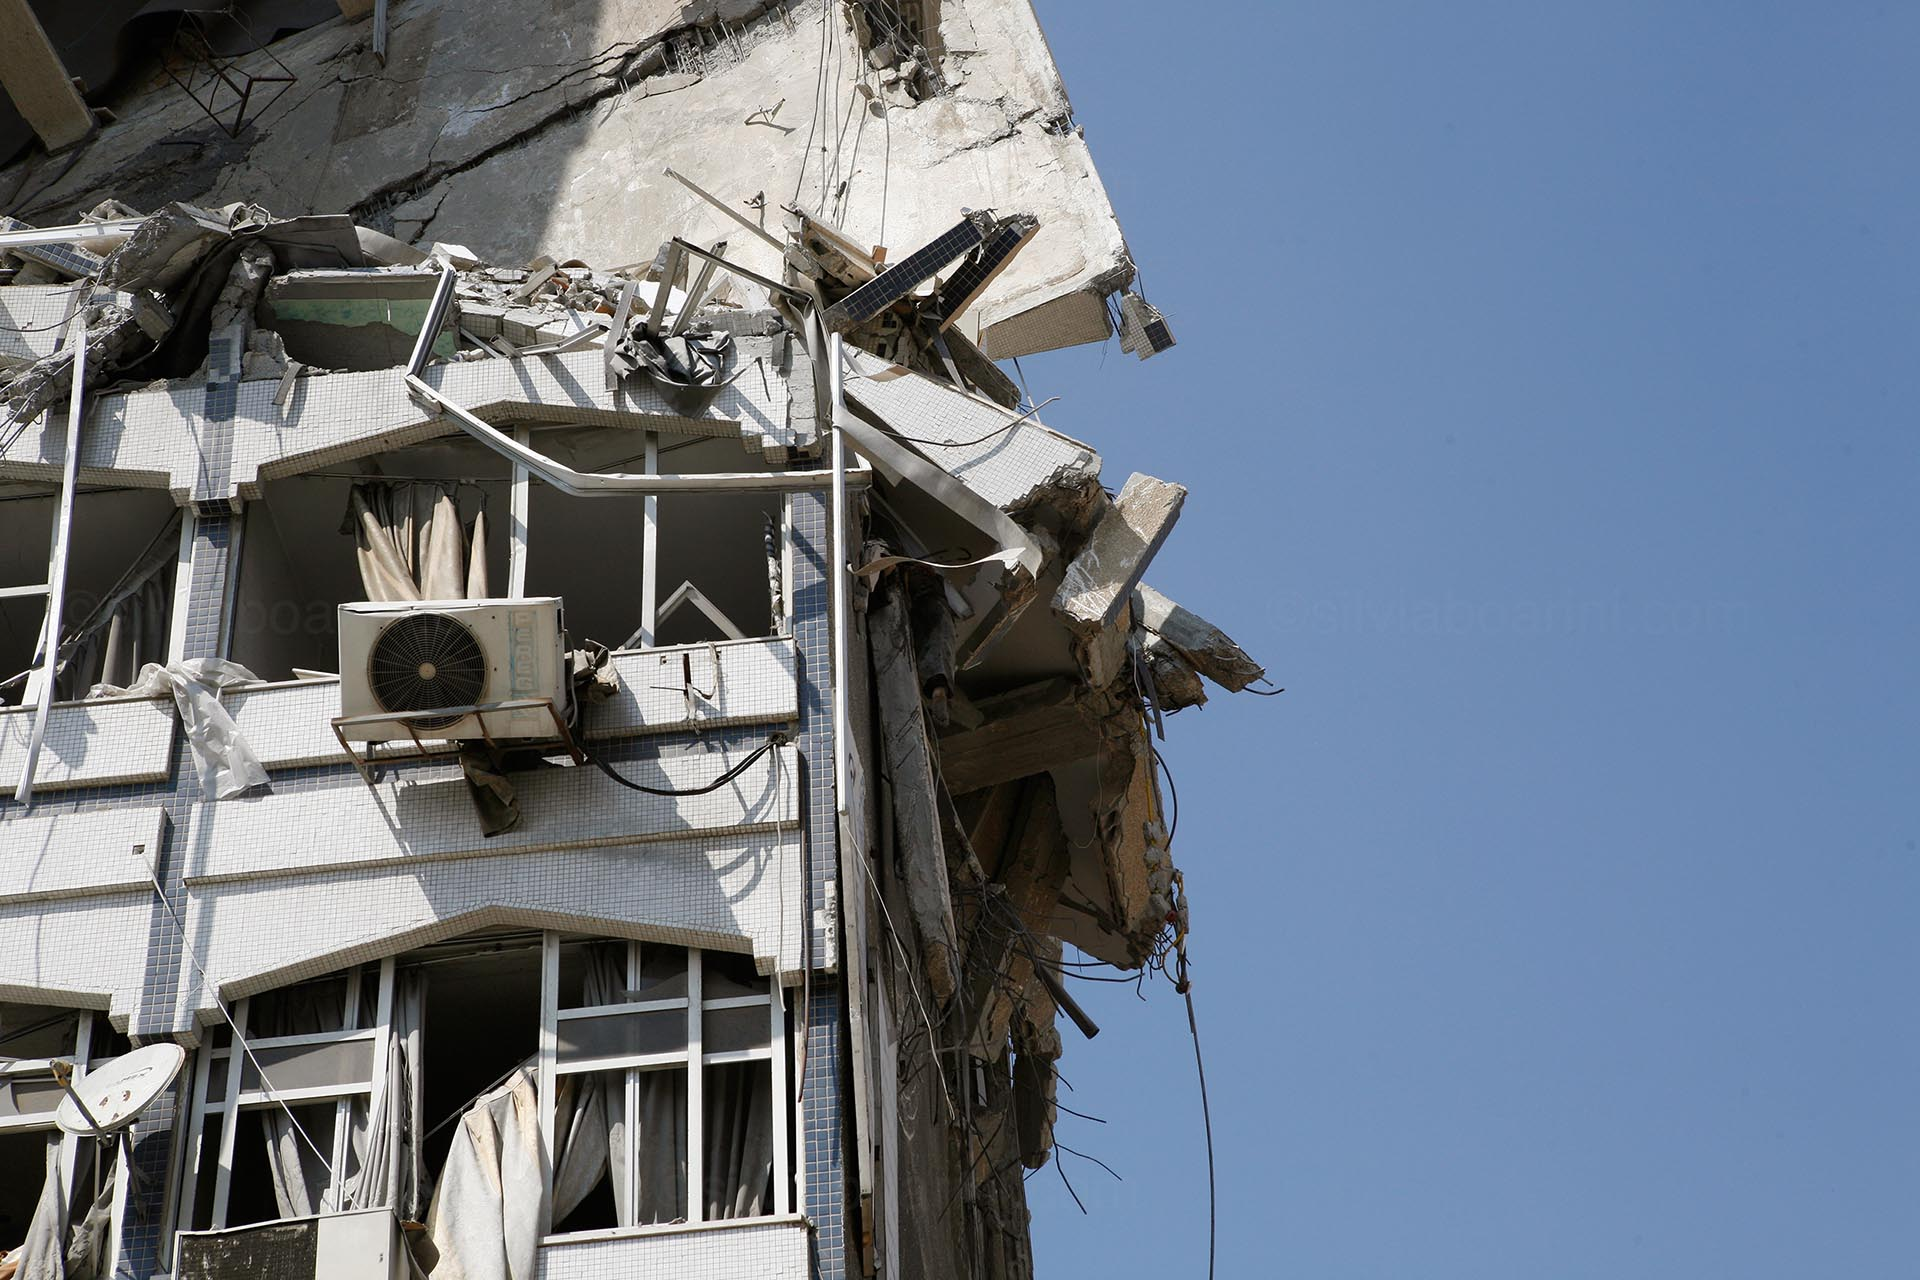 A residential tower in Gaza was bombed over night. Gaza, July 2014